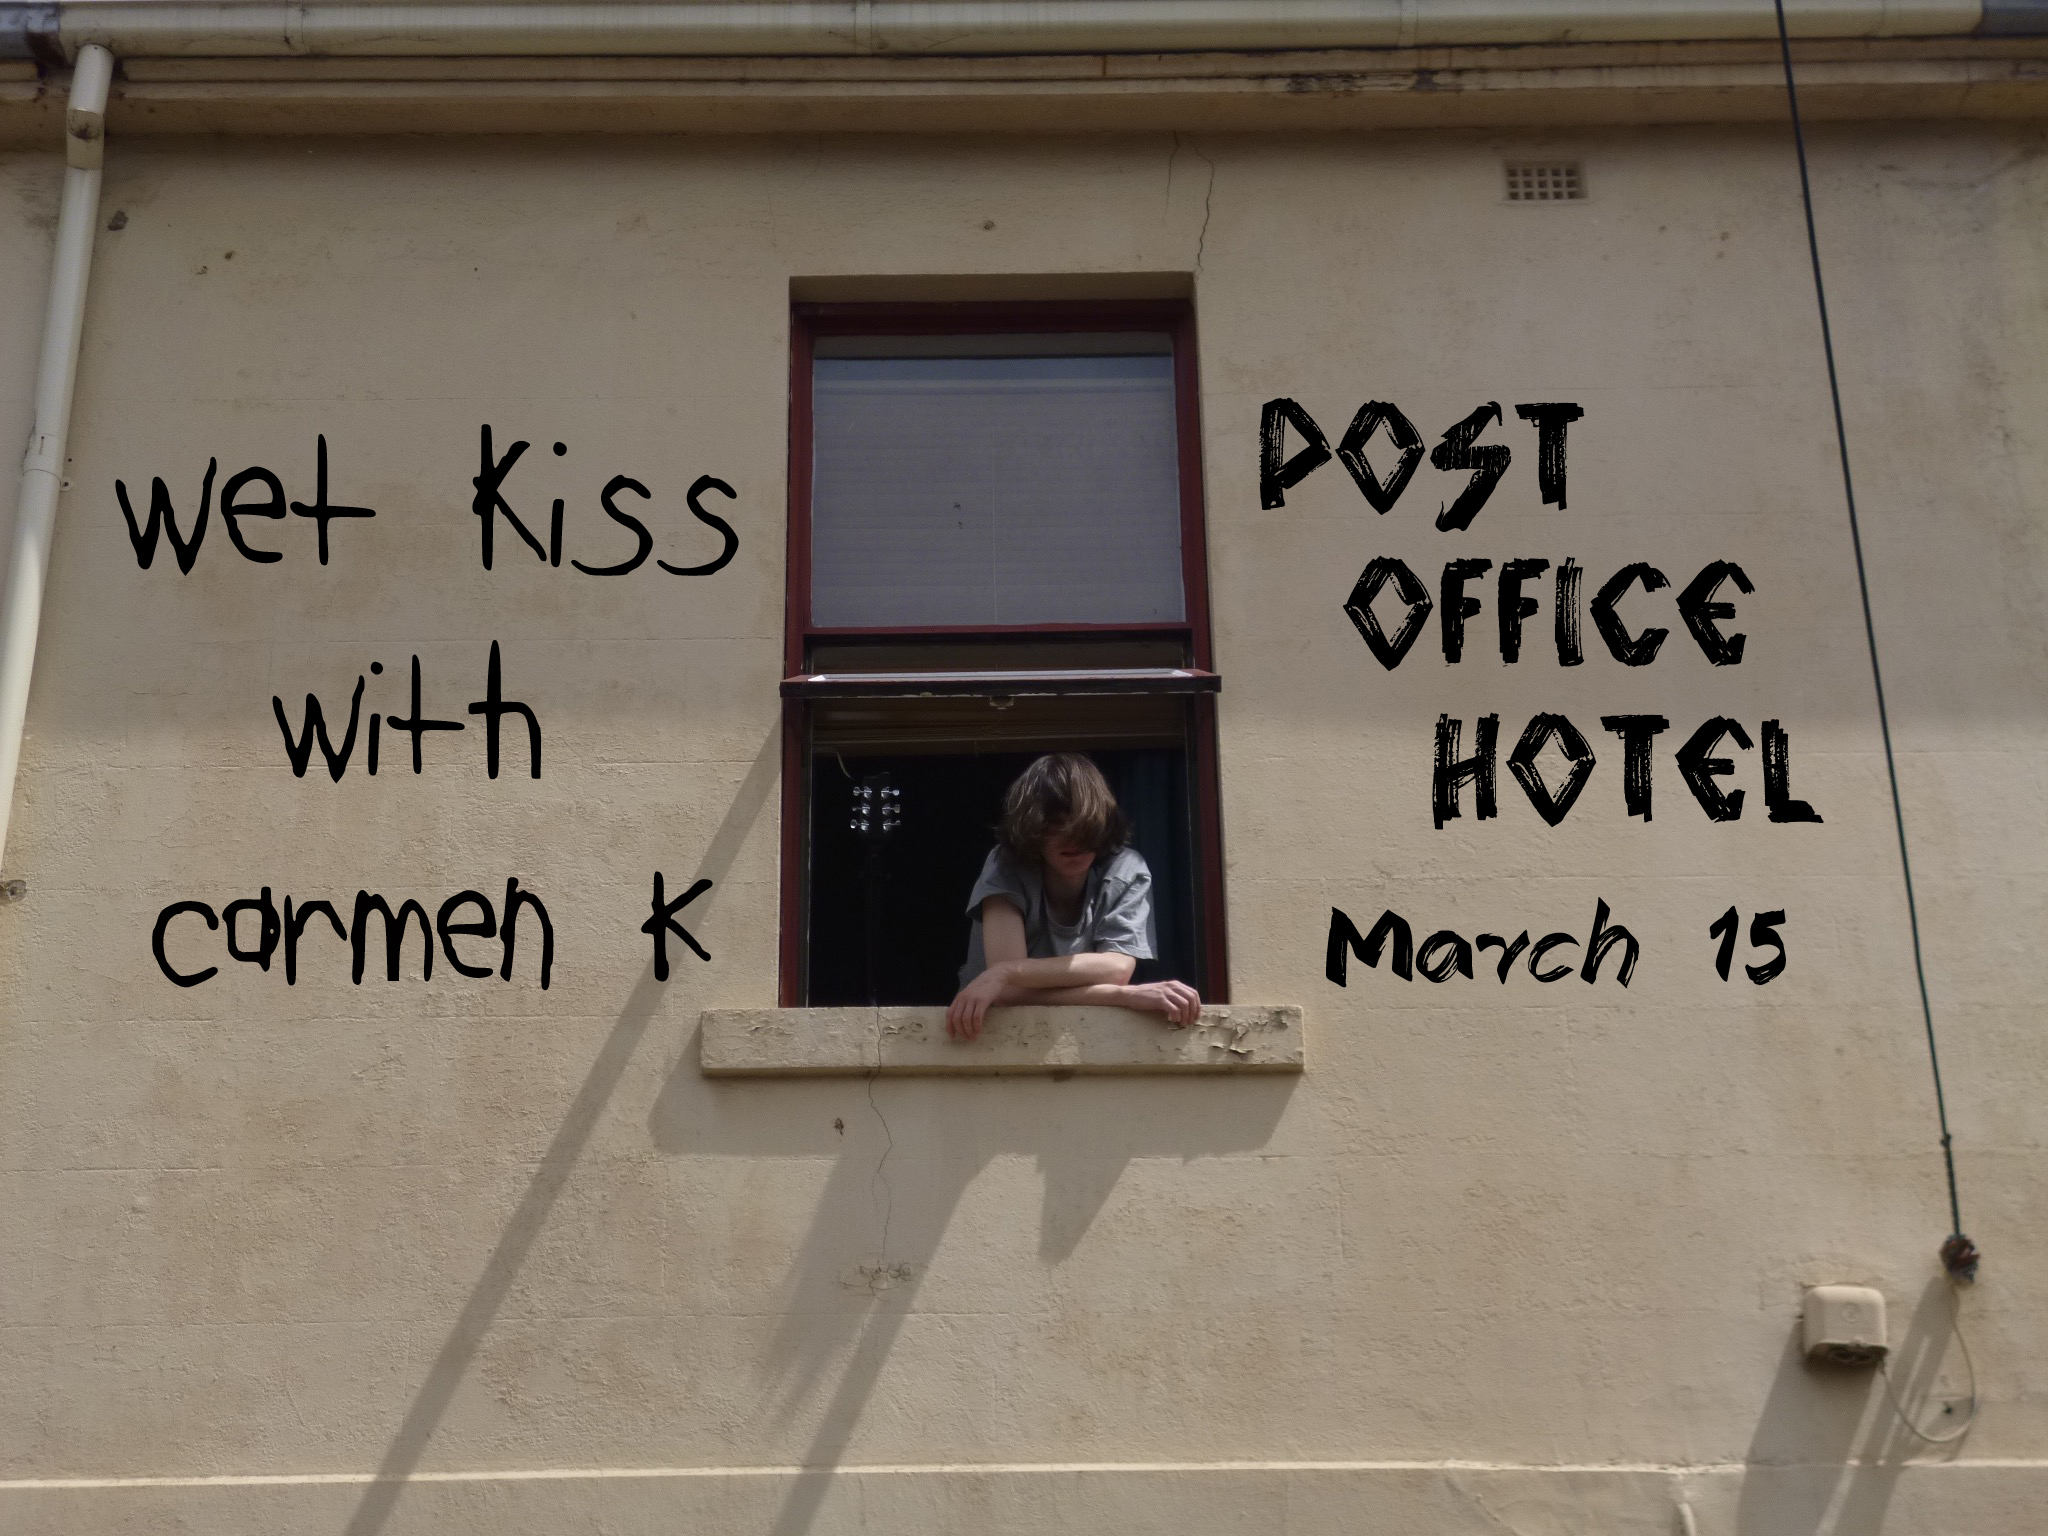 wet kiss flyer post office.jpg